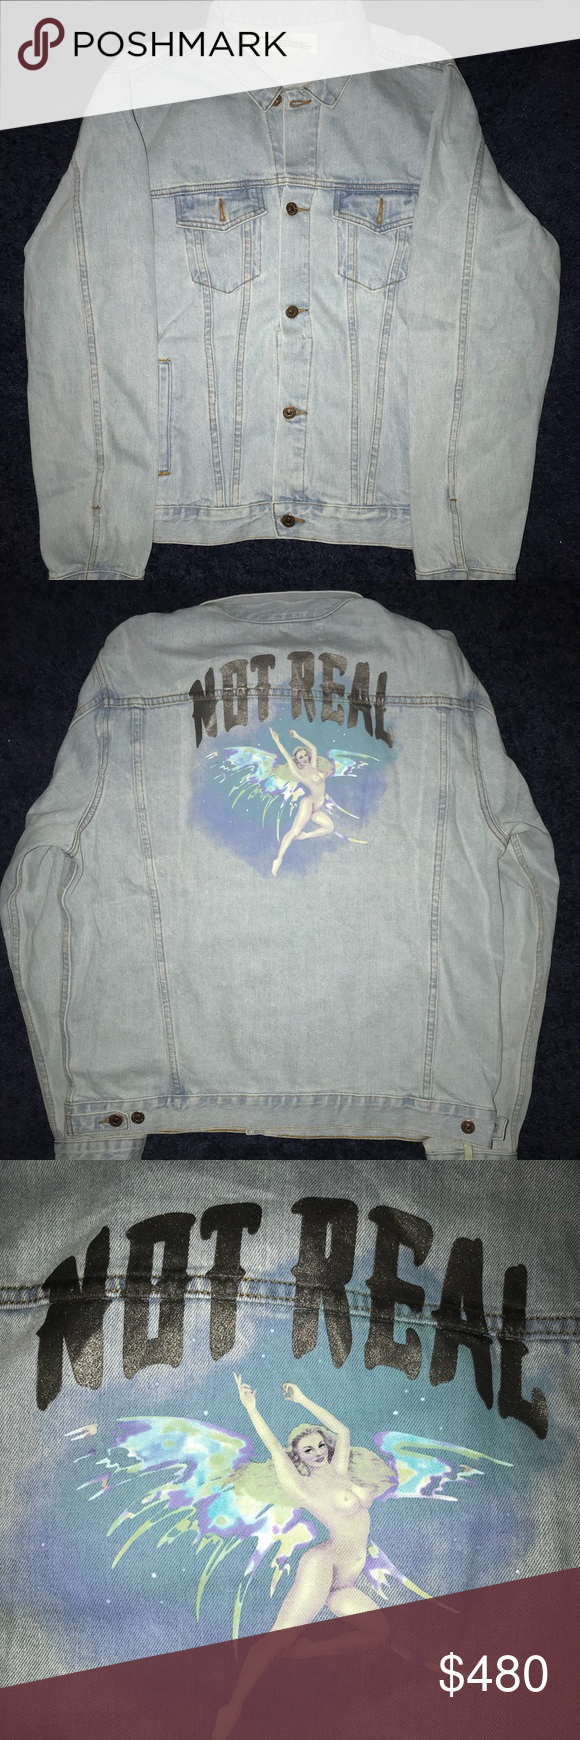 ab72e2037537 Off White Angel over denim jacket Size L Men (Fits XL) Bought used Never